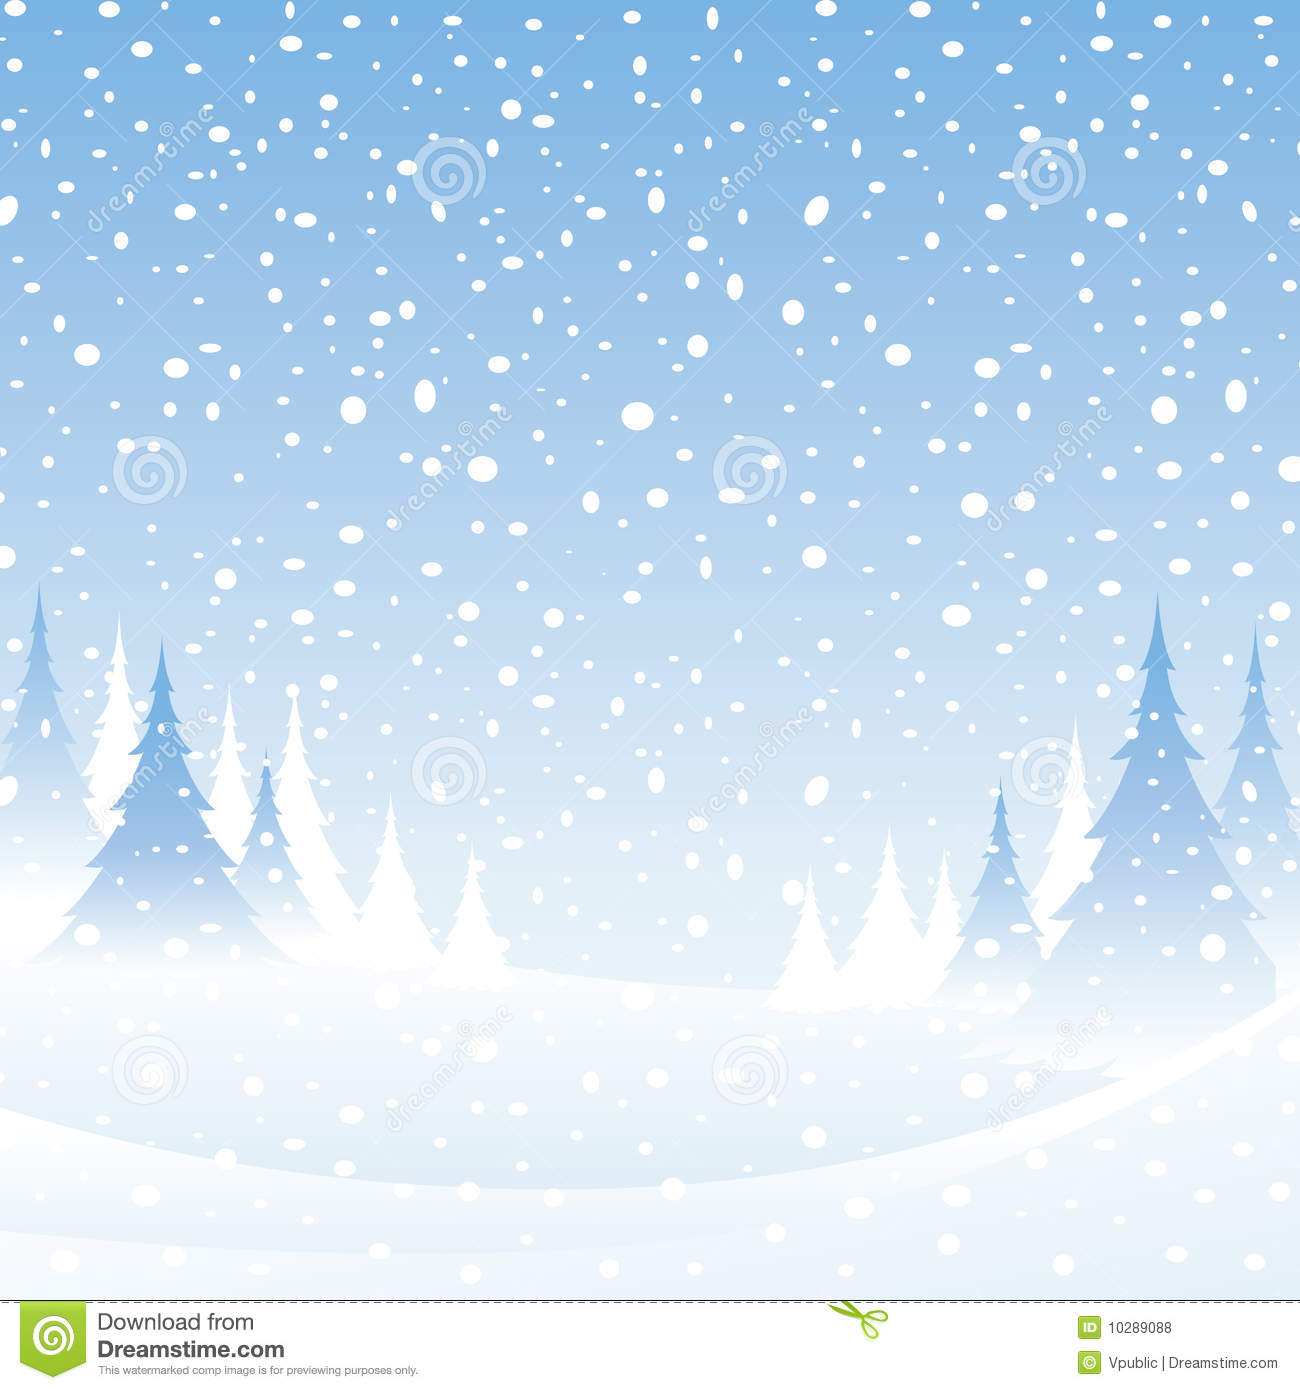 Free christmas winter snow scene clipart jpg free Free Snow Scene Cliparts, Download Free Clip Art, Free Clip Art on ... jpg free